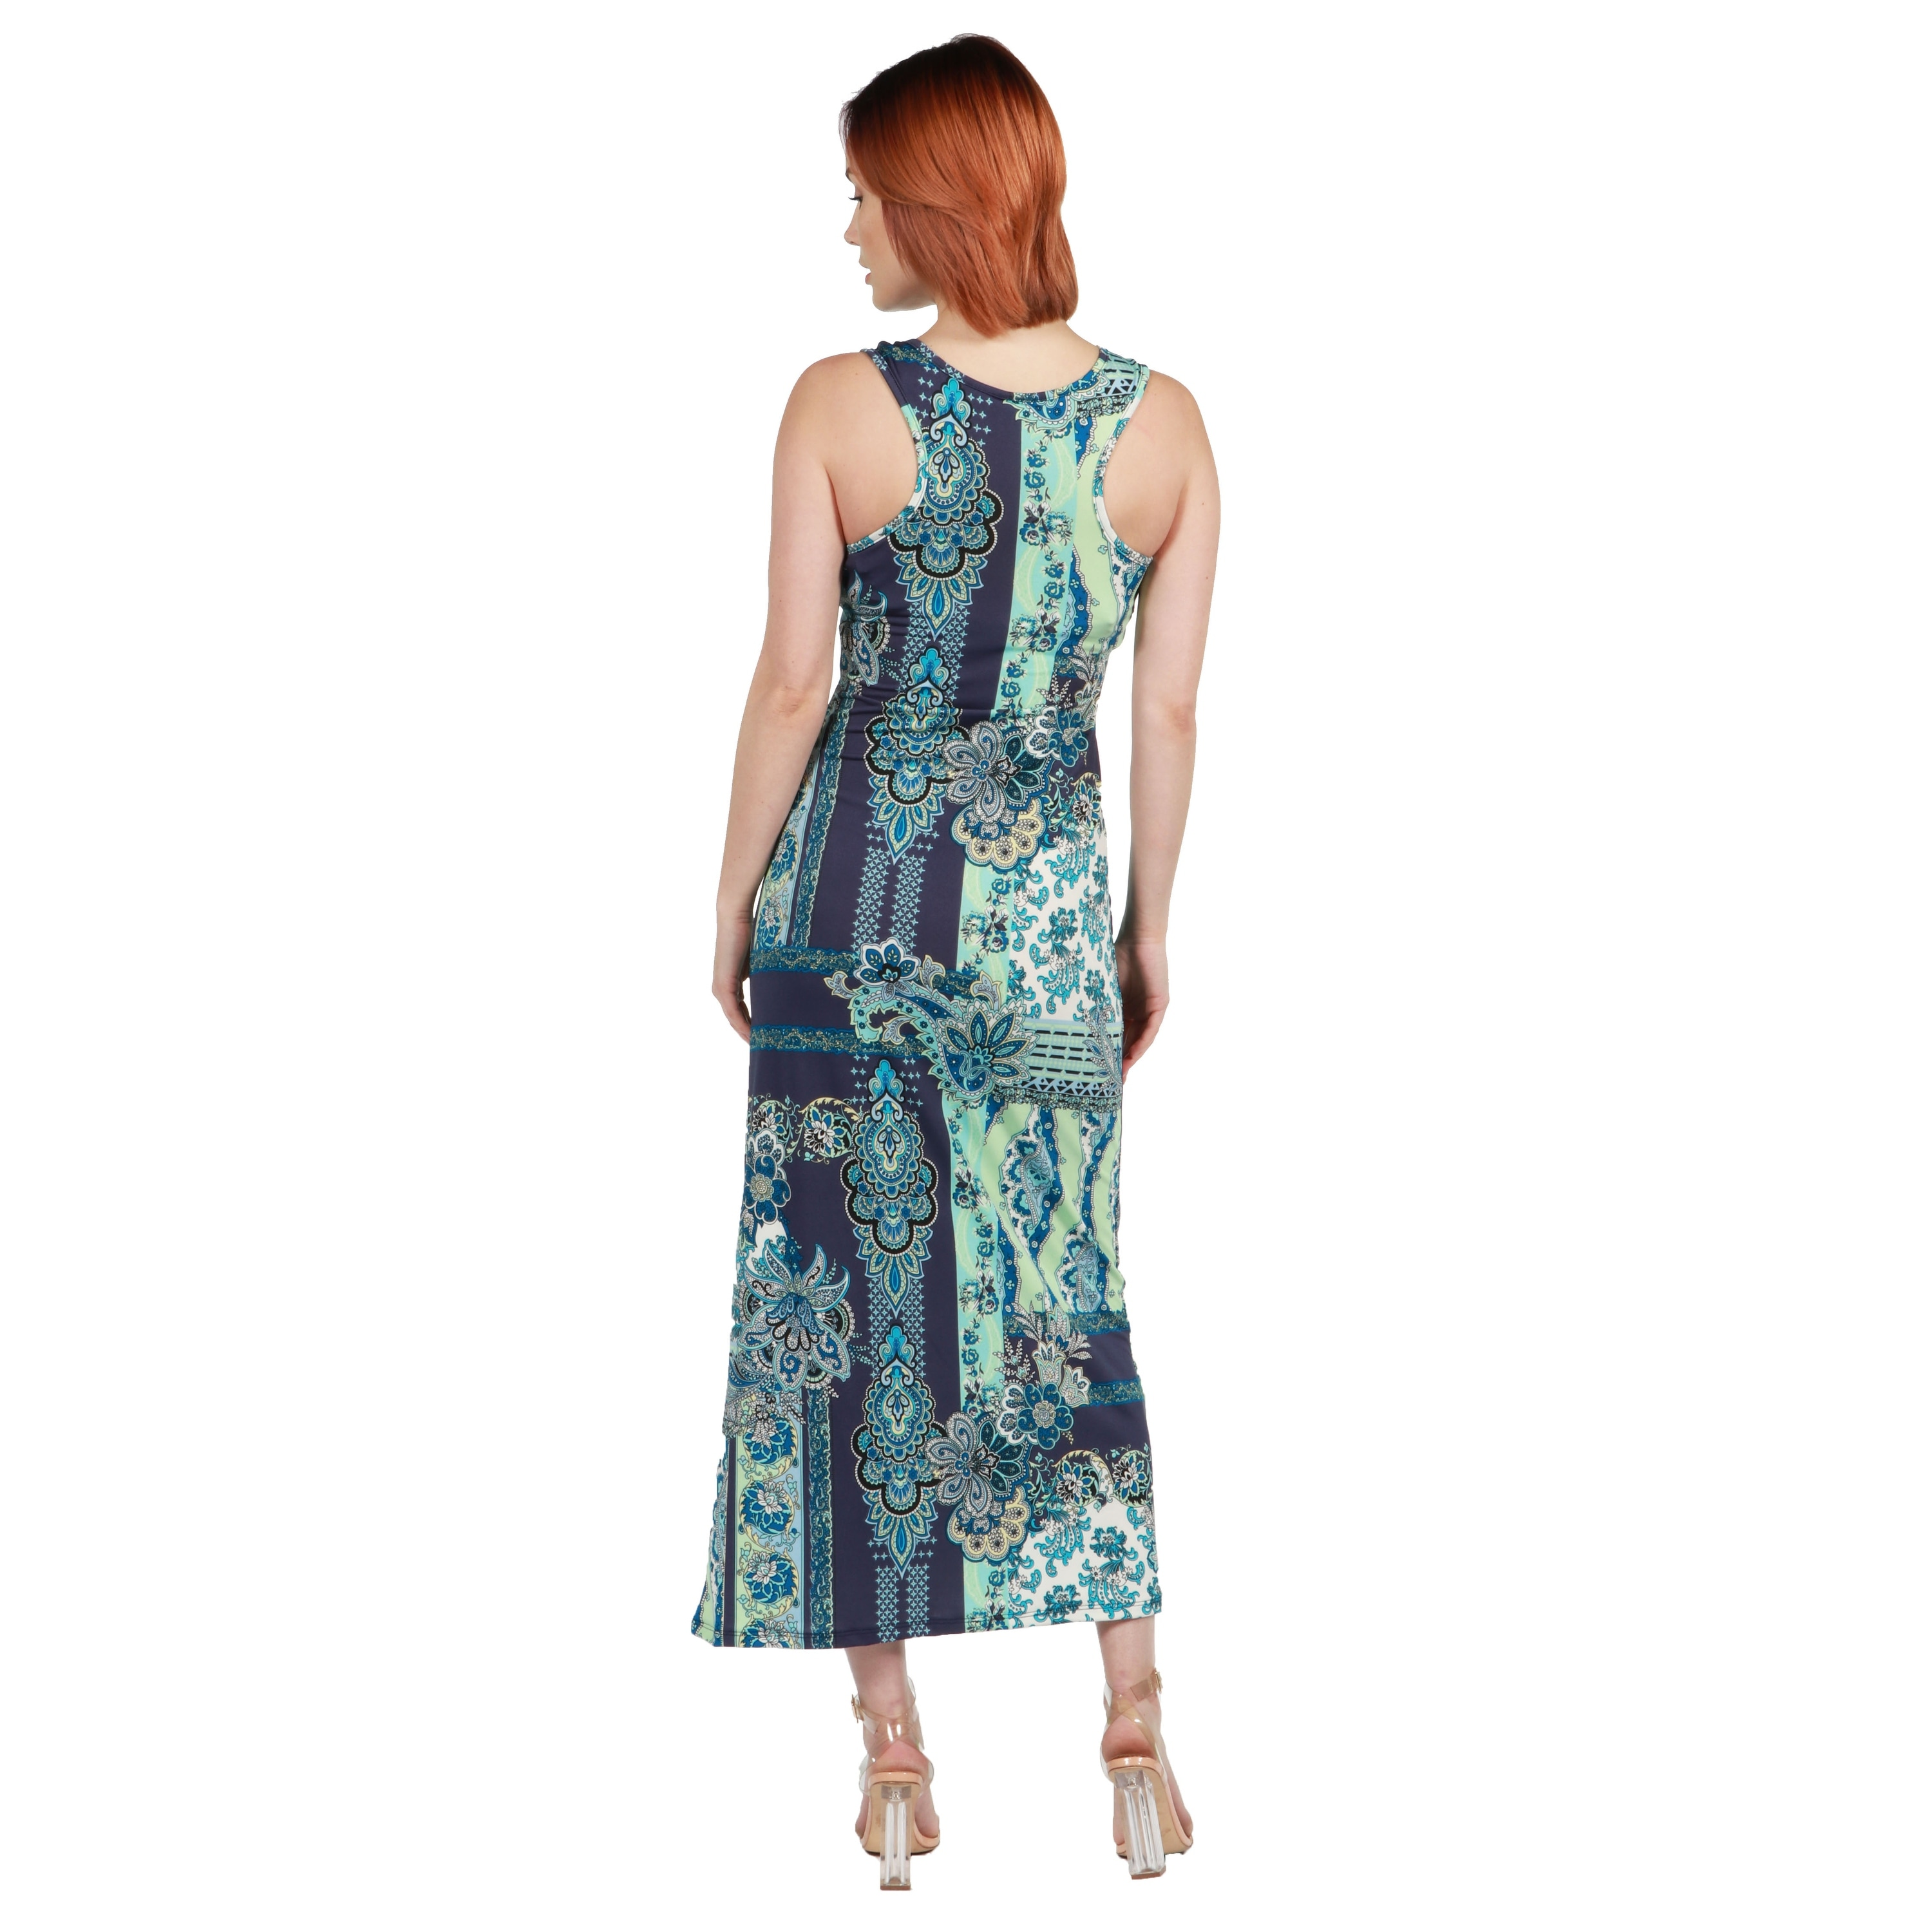 7f5fdee6953 Shop 24seven Comfort Apparel Renee Blue and Green Long Dress - Free  Shipping On Orders Over  45 - Overstock.com - 20709986